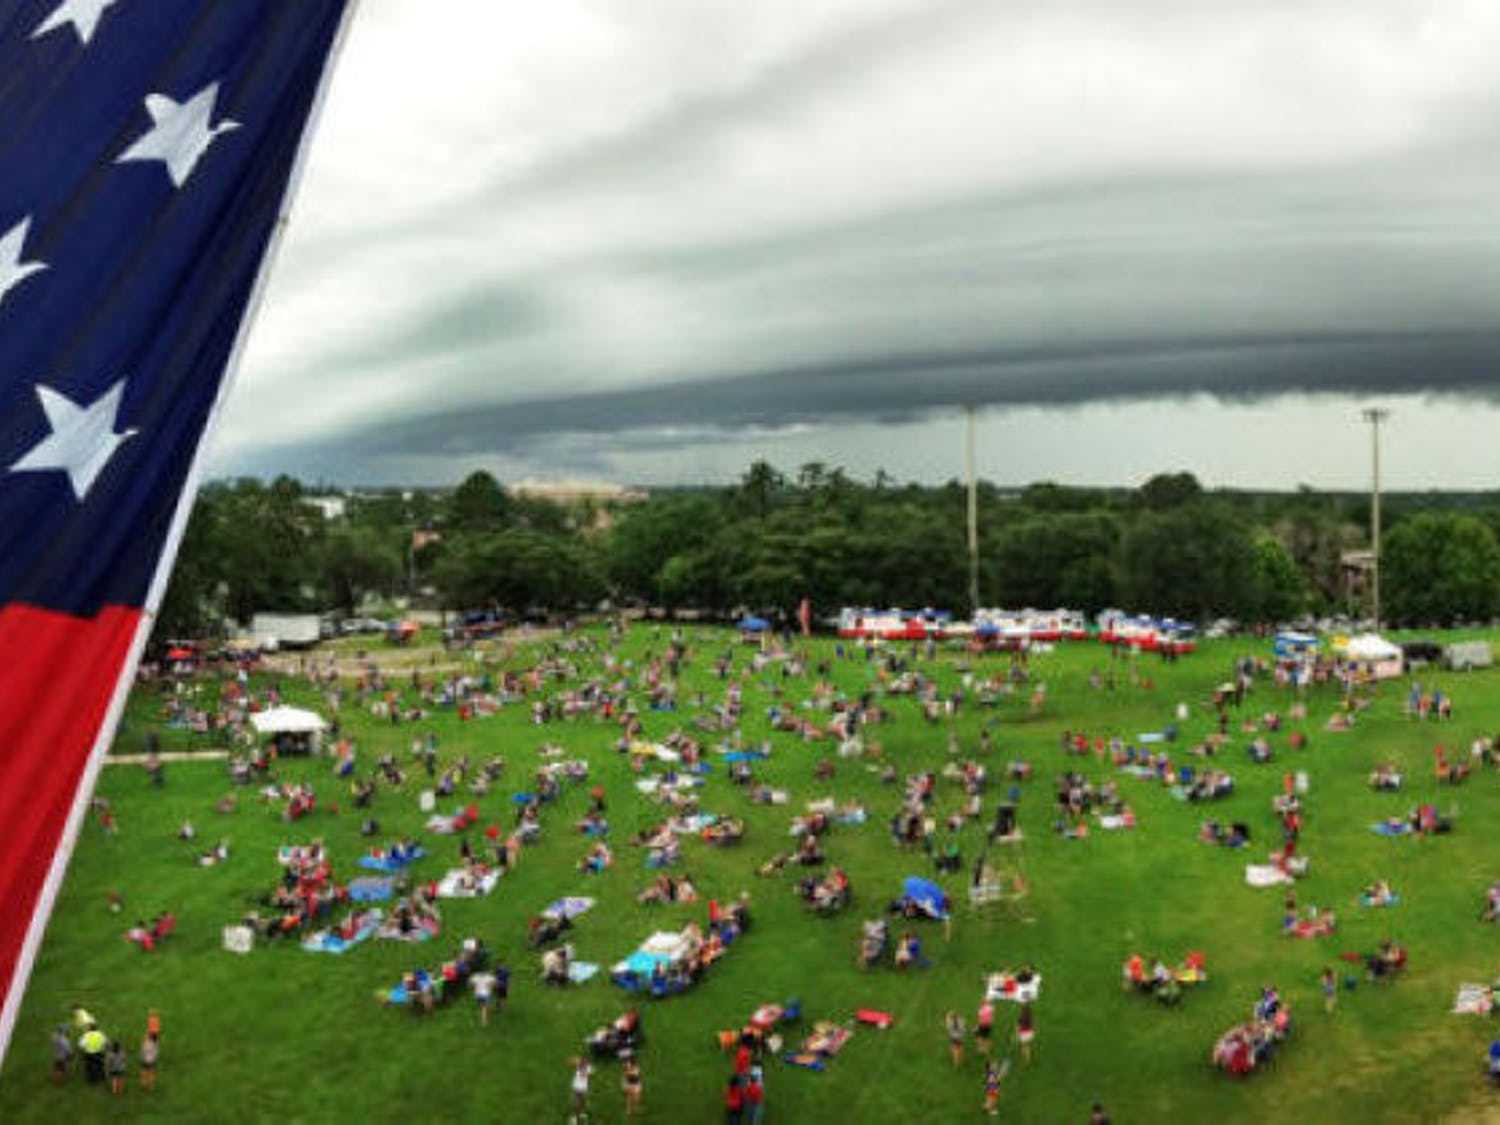 In a panoramic photo, a crowd of students and residents gathers beneath an impending storm on campus at Flavet Field for UF's Fanfares & Fireworks event in 2013.